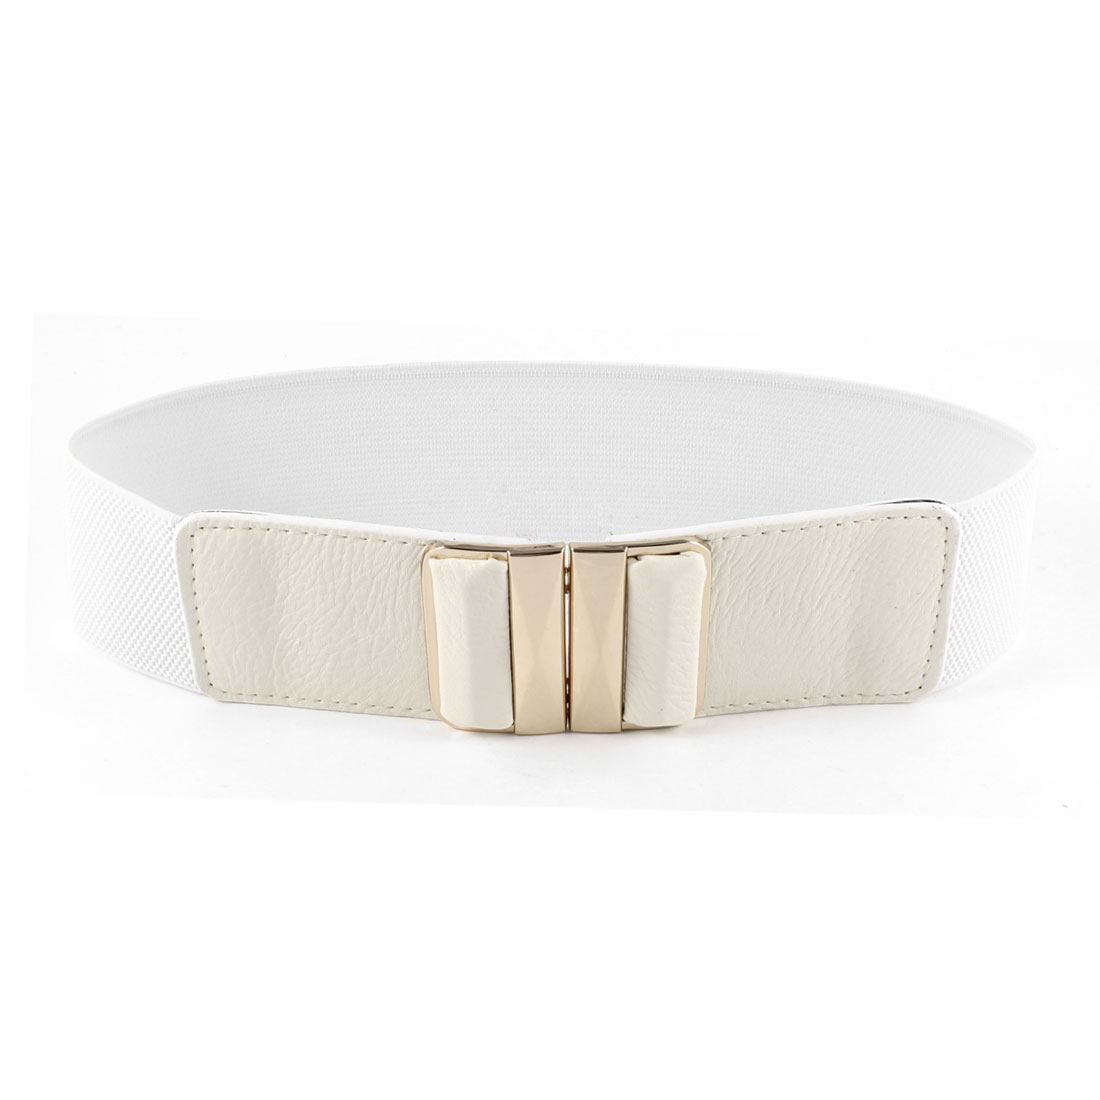 Women Faceted Rectangle Interlock Buckle White Stretchy Waistband Belt 6CM Width